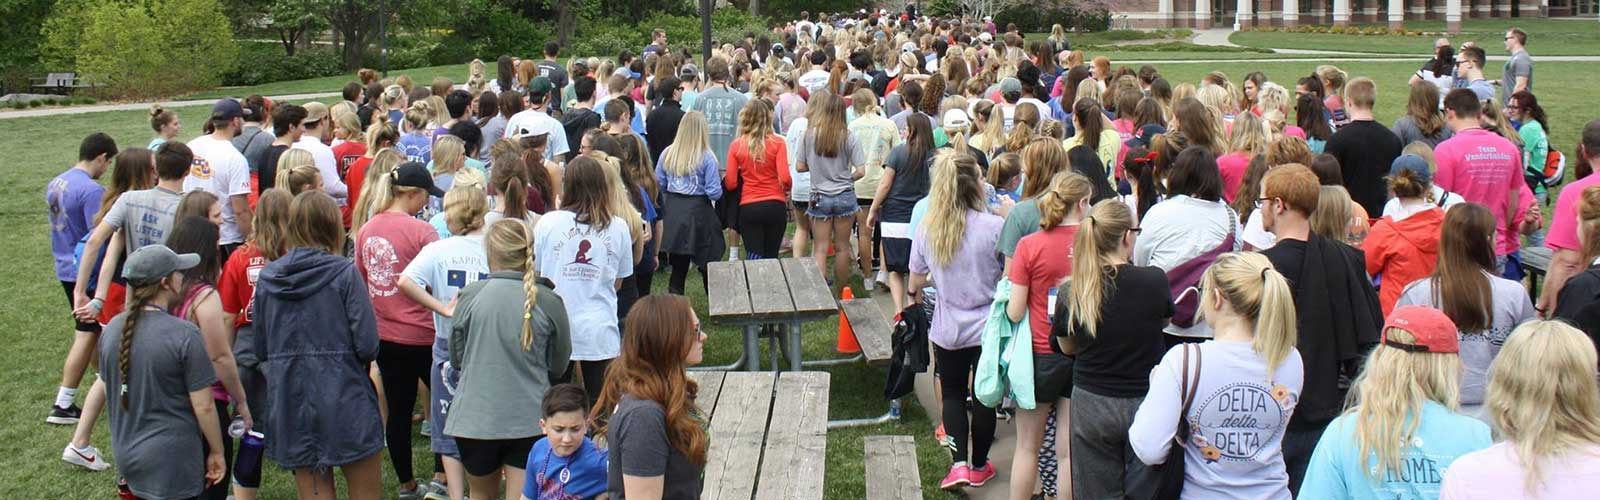 Crowd of 600 begins the April 17 Out of the Darkness Campus Walk.